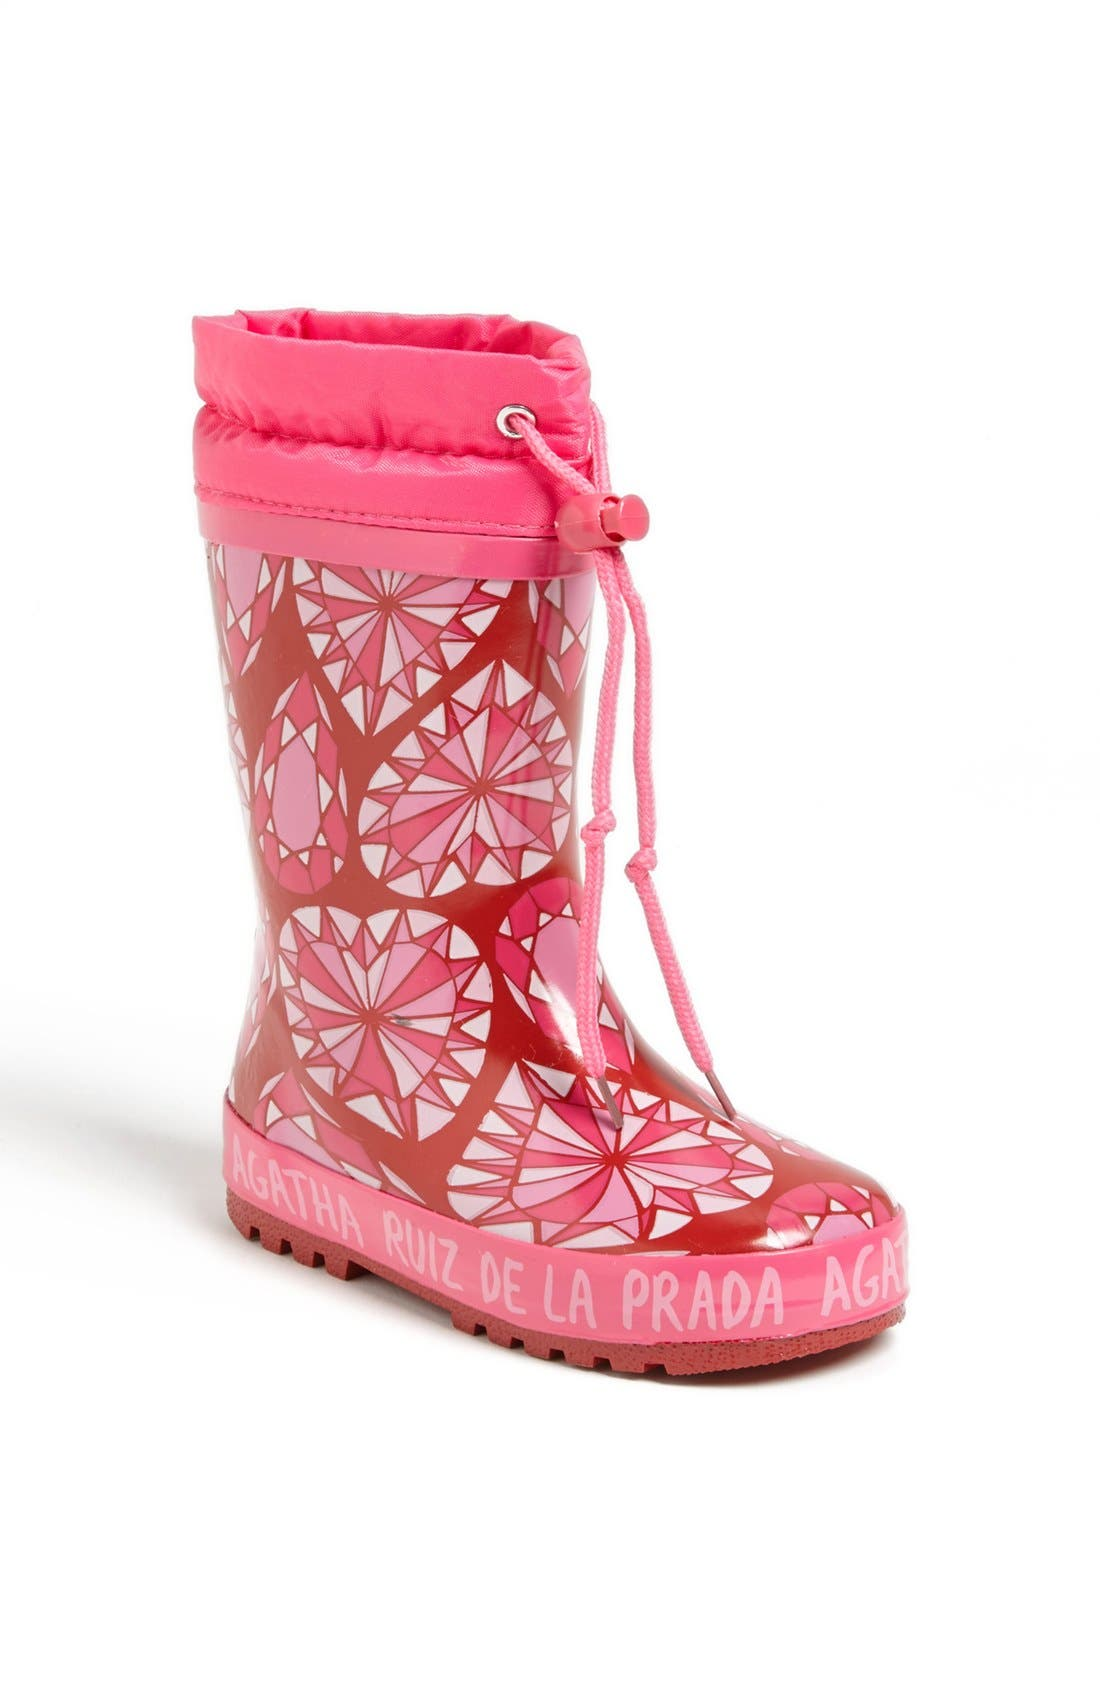 Alternate Image 1 Selected - Agatha Ruiz de la Prada 'Diamond' Rain Boot (Toddler, Little Kid & Big Kid)